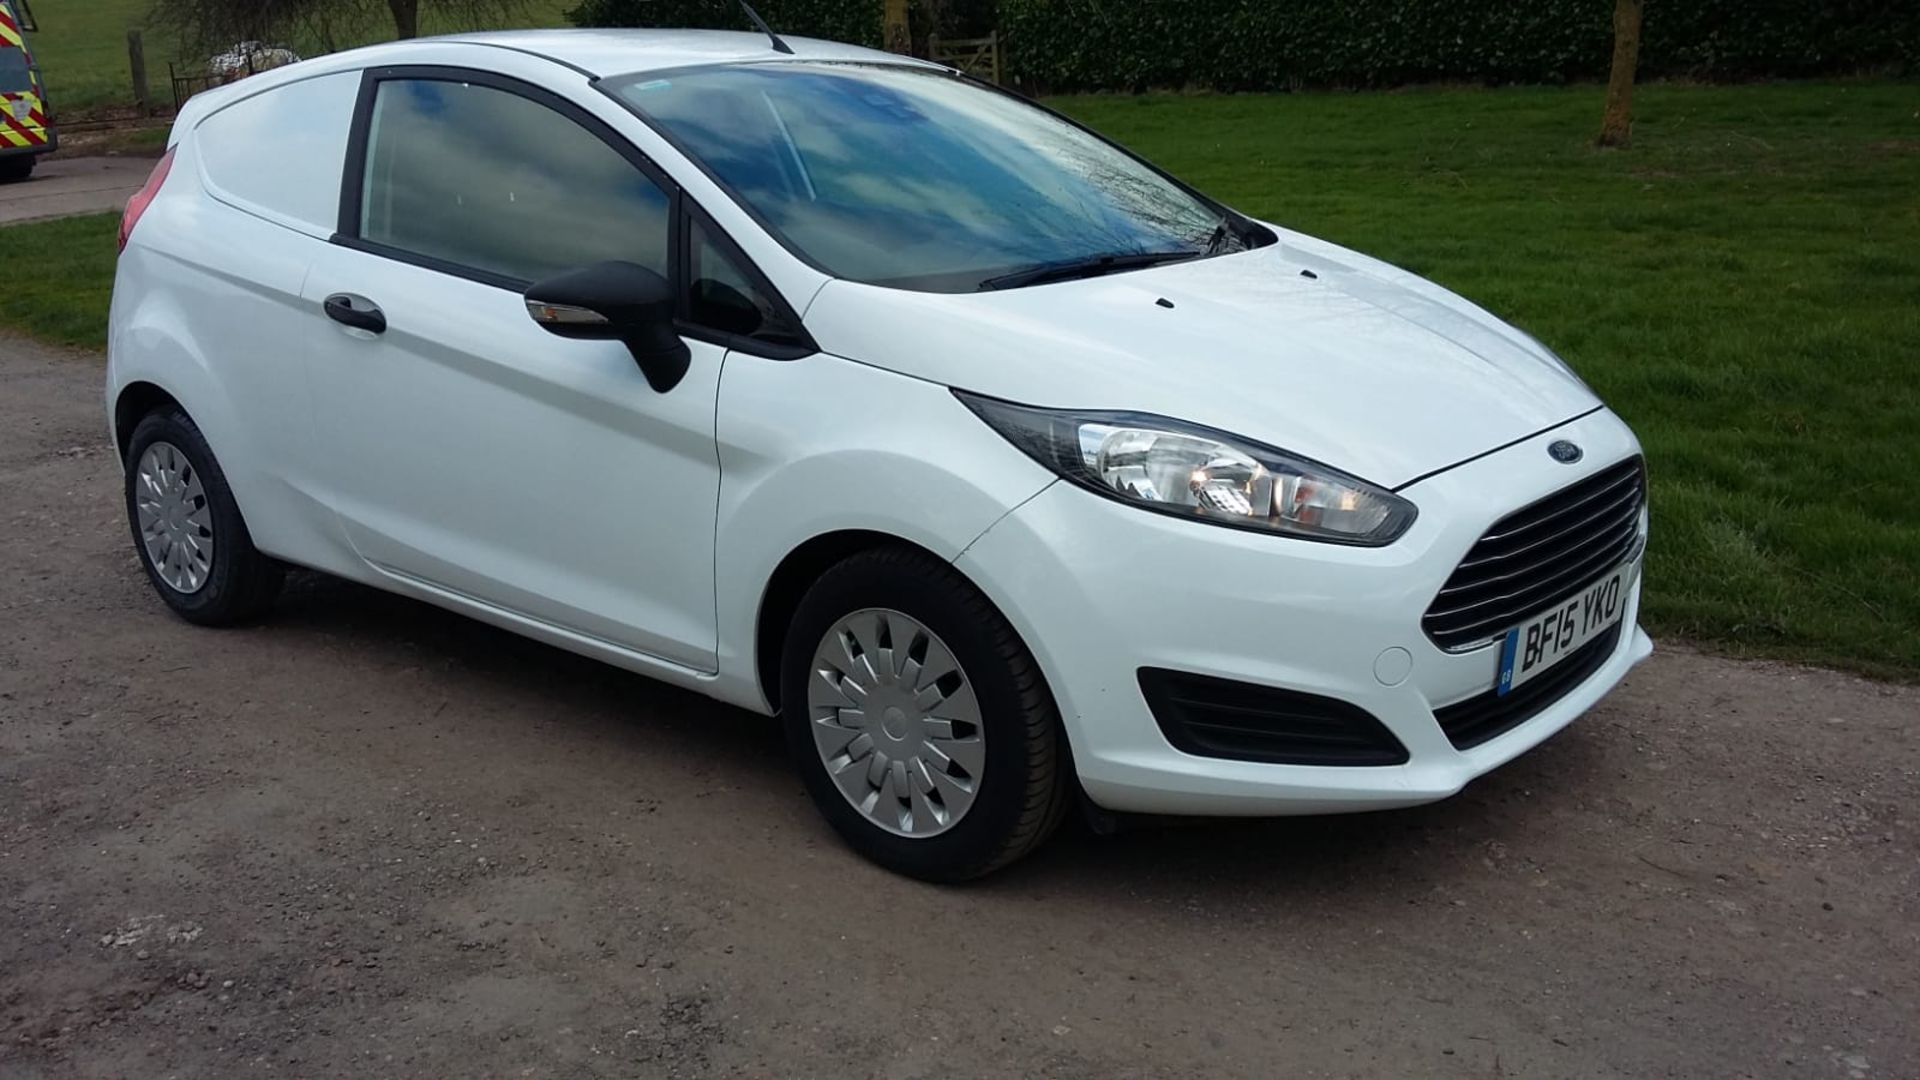 Lot 93 - 2015/15 REG FORD FIESTA ECONETIC TECH TDCI 1.6 DIESEL CAR DERIVED VAN, SHOWING 0 FORMER KEEPERS